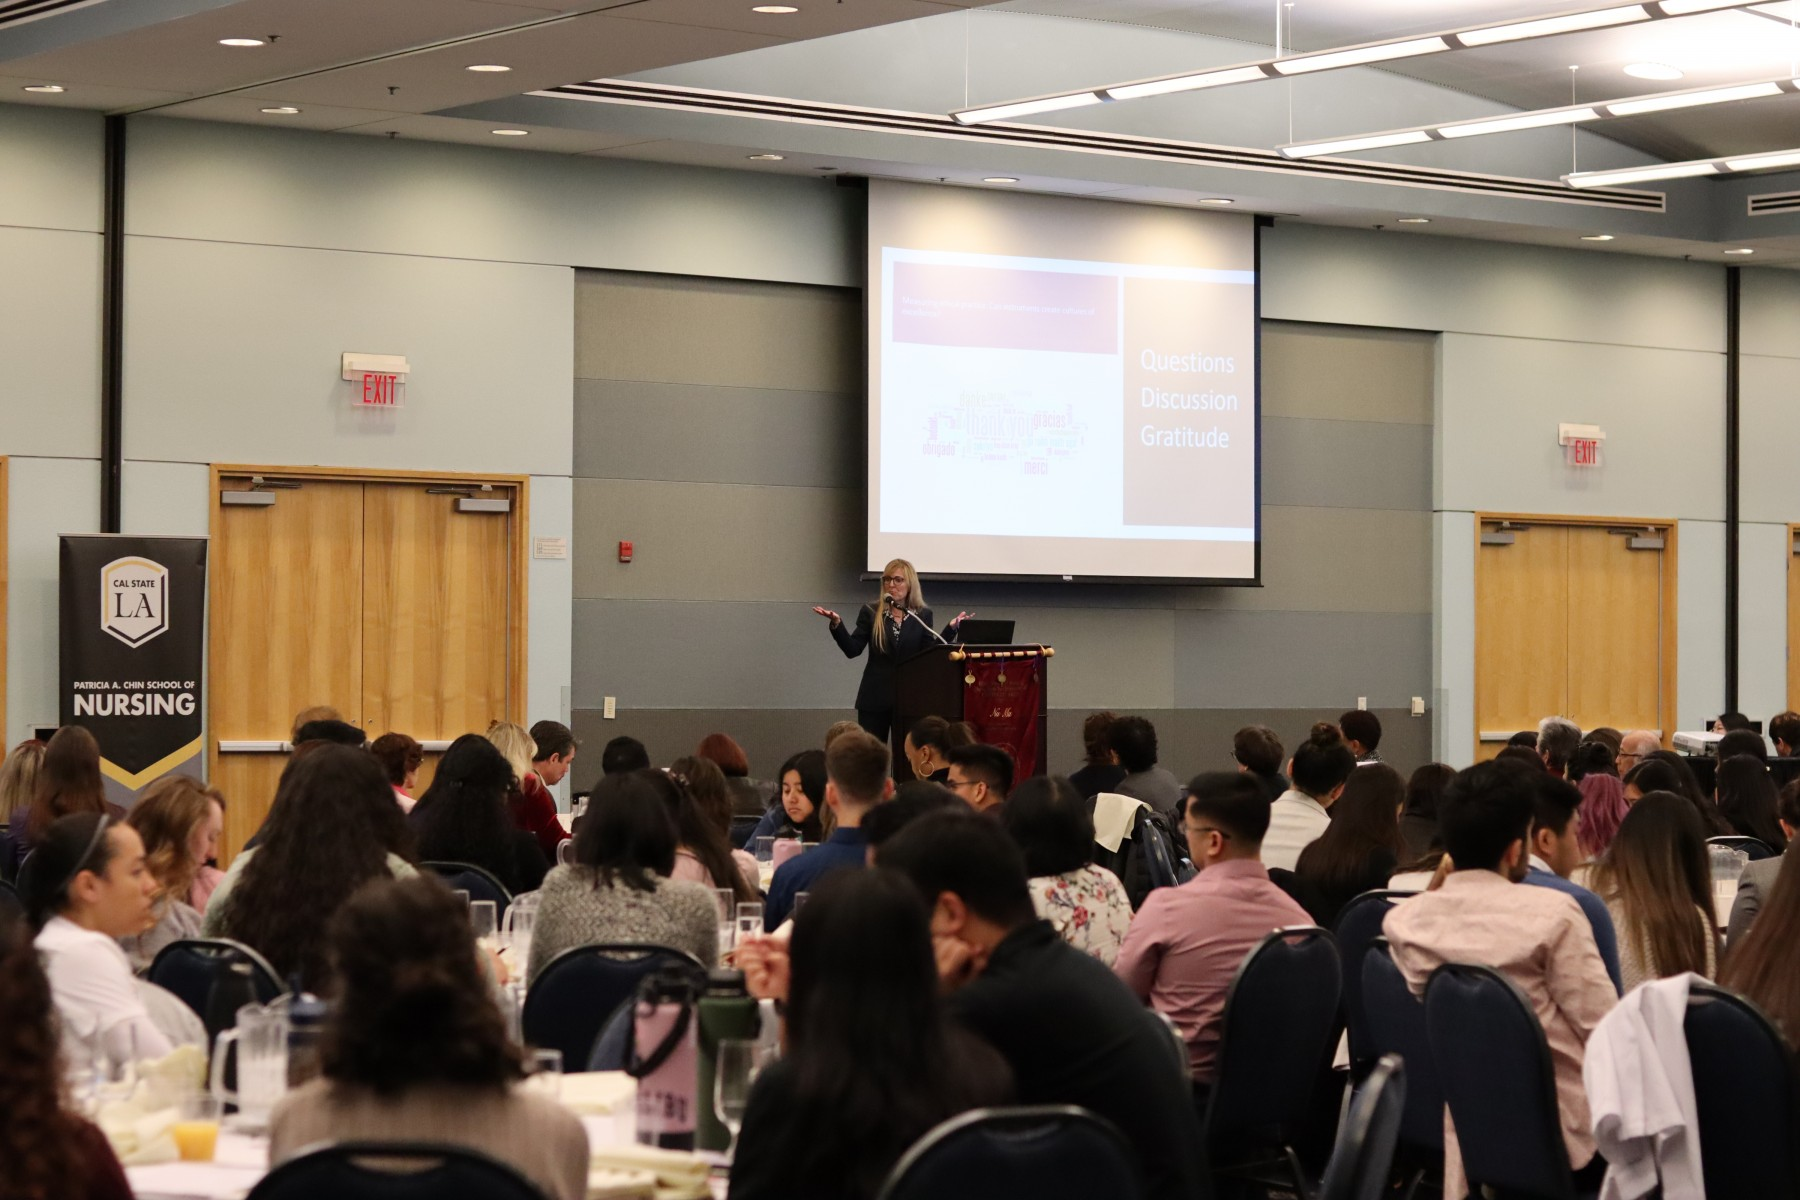 Heather Fitzegerald speaking at the 14th annual evidence-based practice nursing forum